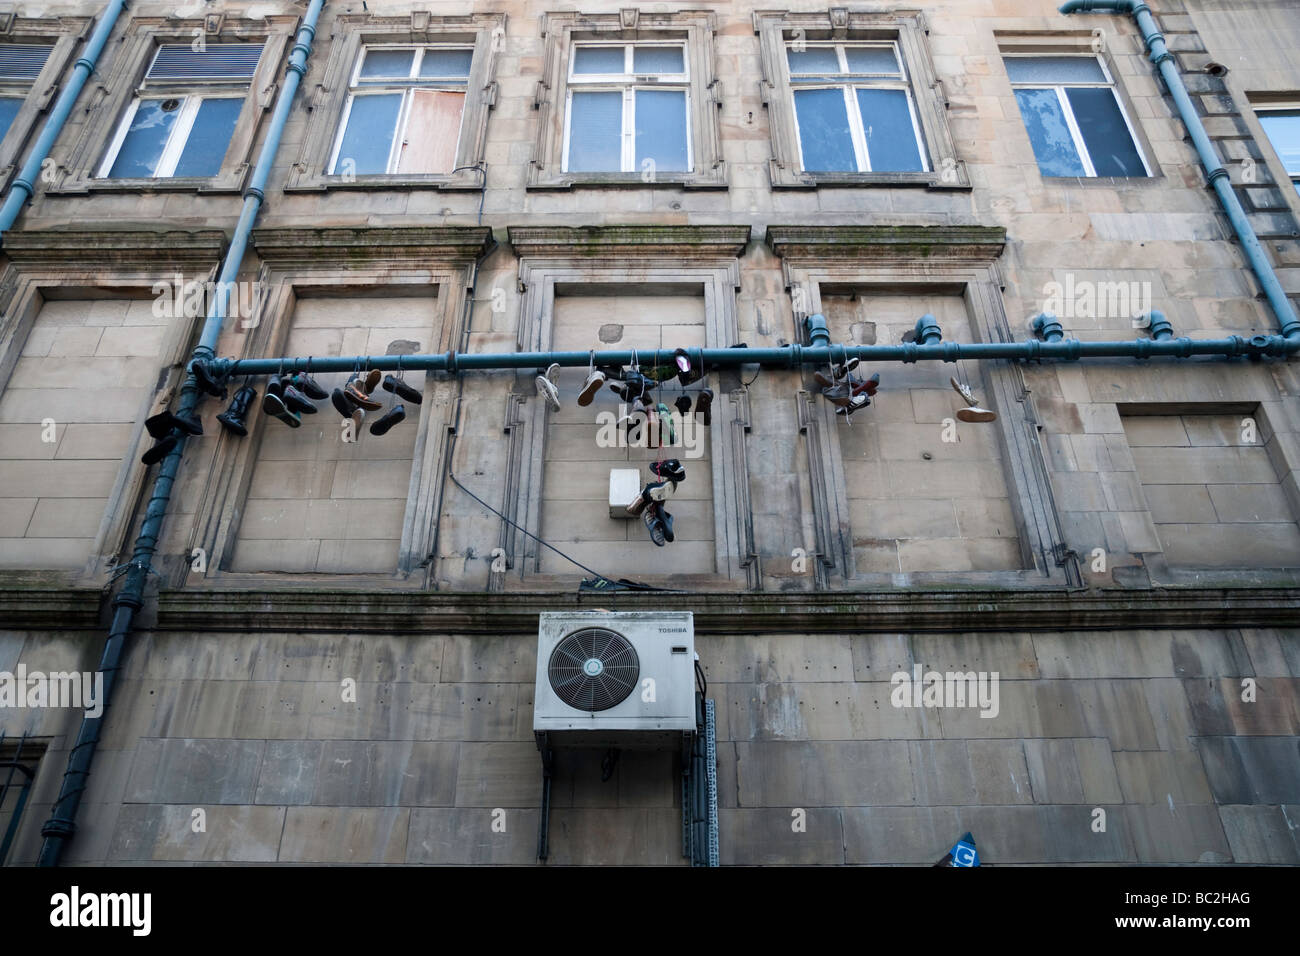 A collection of shoes hanging from a drain pipe on the back of a building - Stock Image